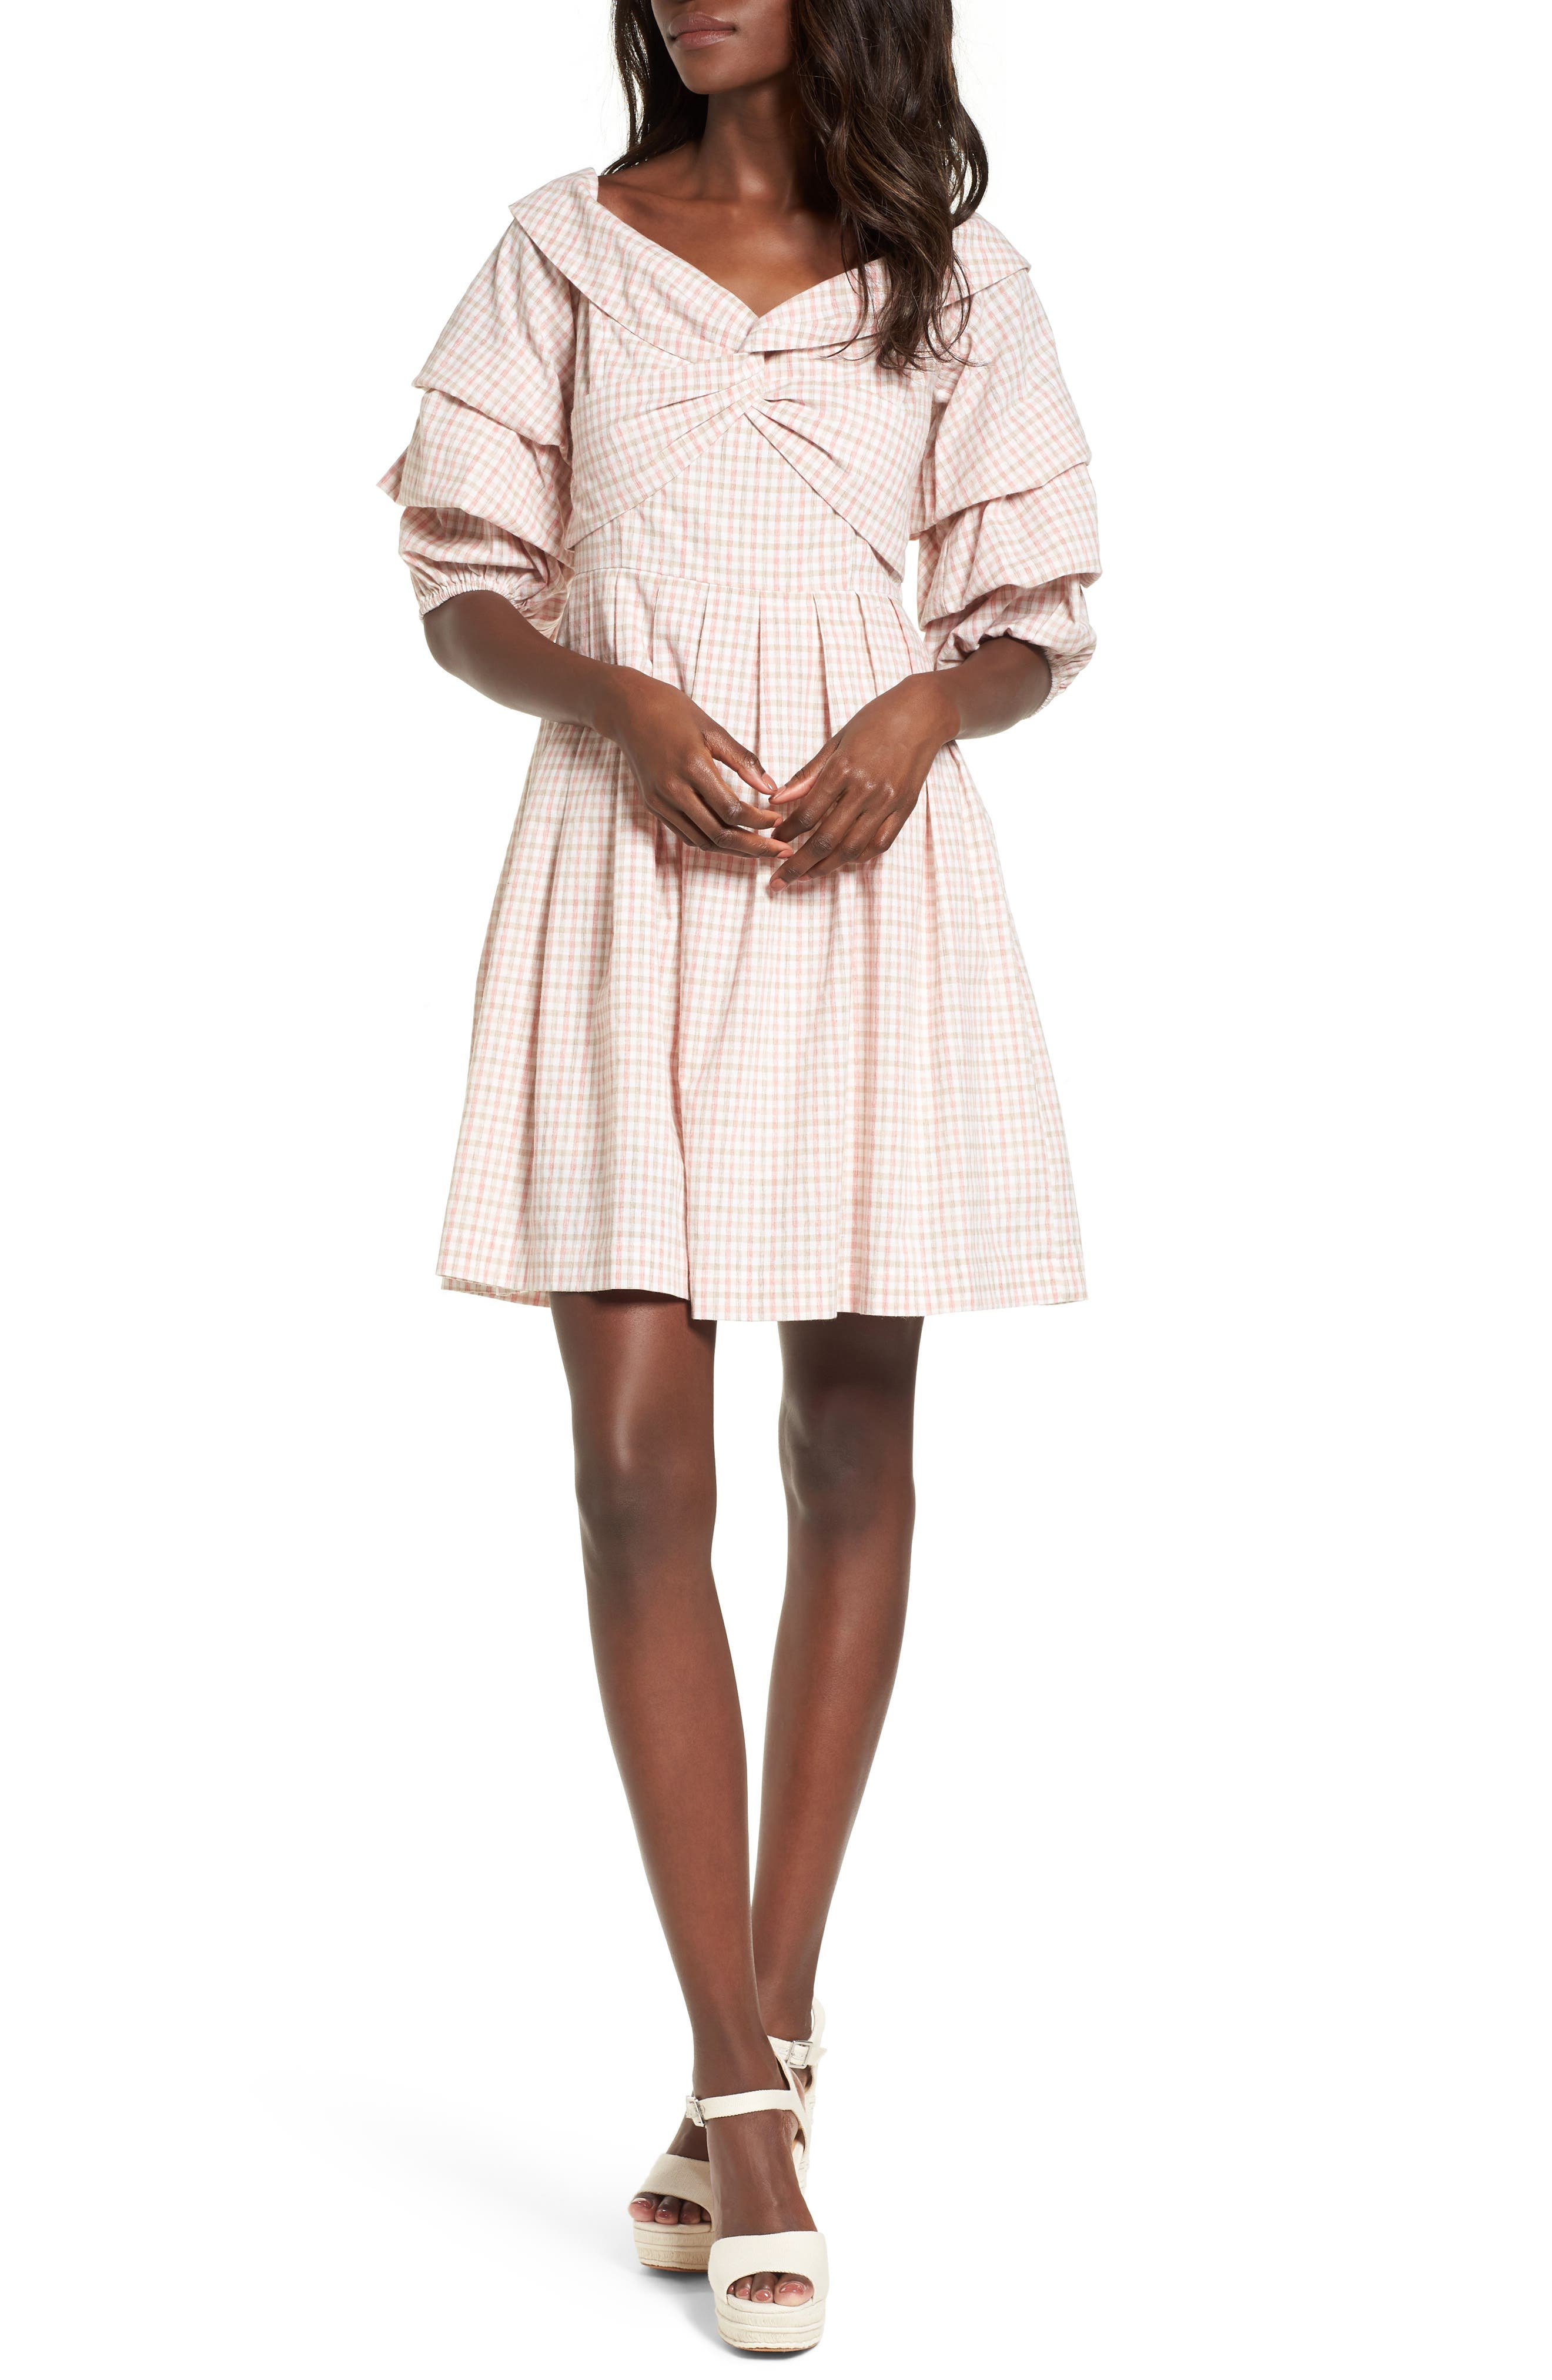 Chriselle x J.O.A. Tiered Sleeve Minidress,                         Main,                         color, Patina Gingham